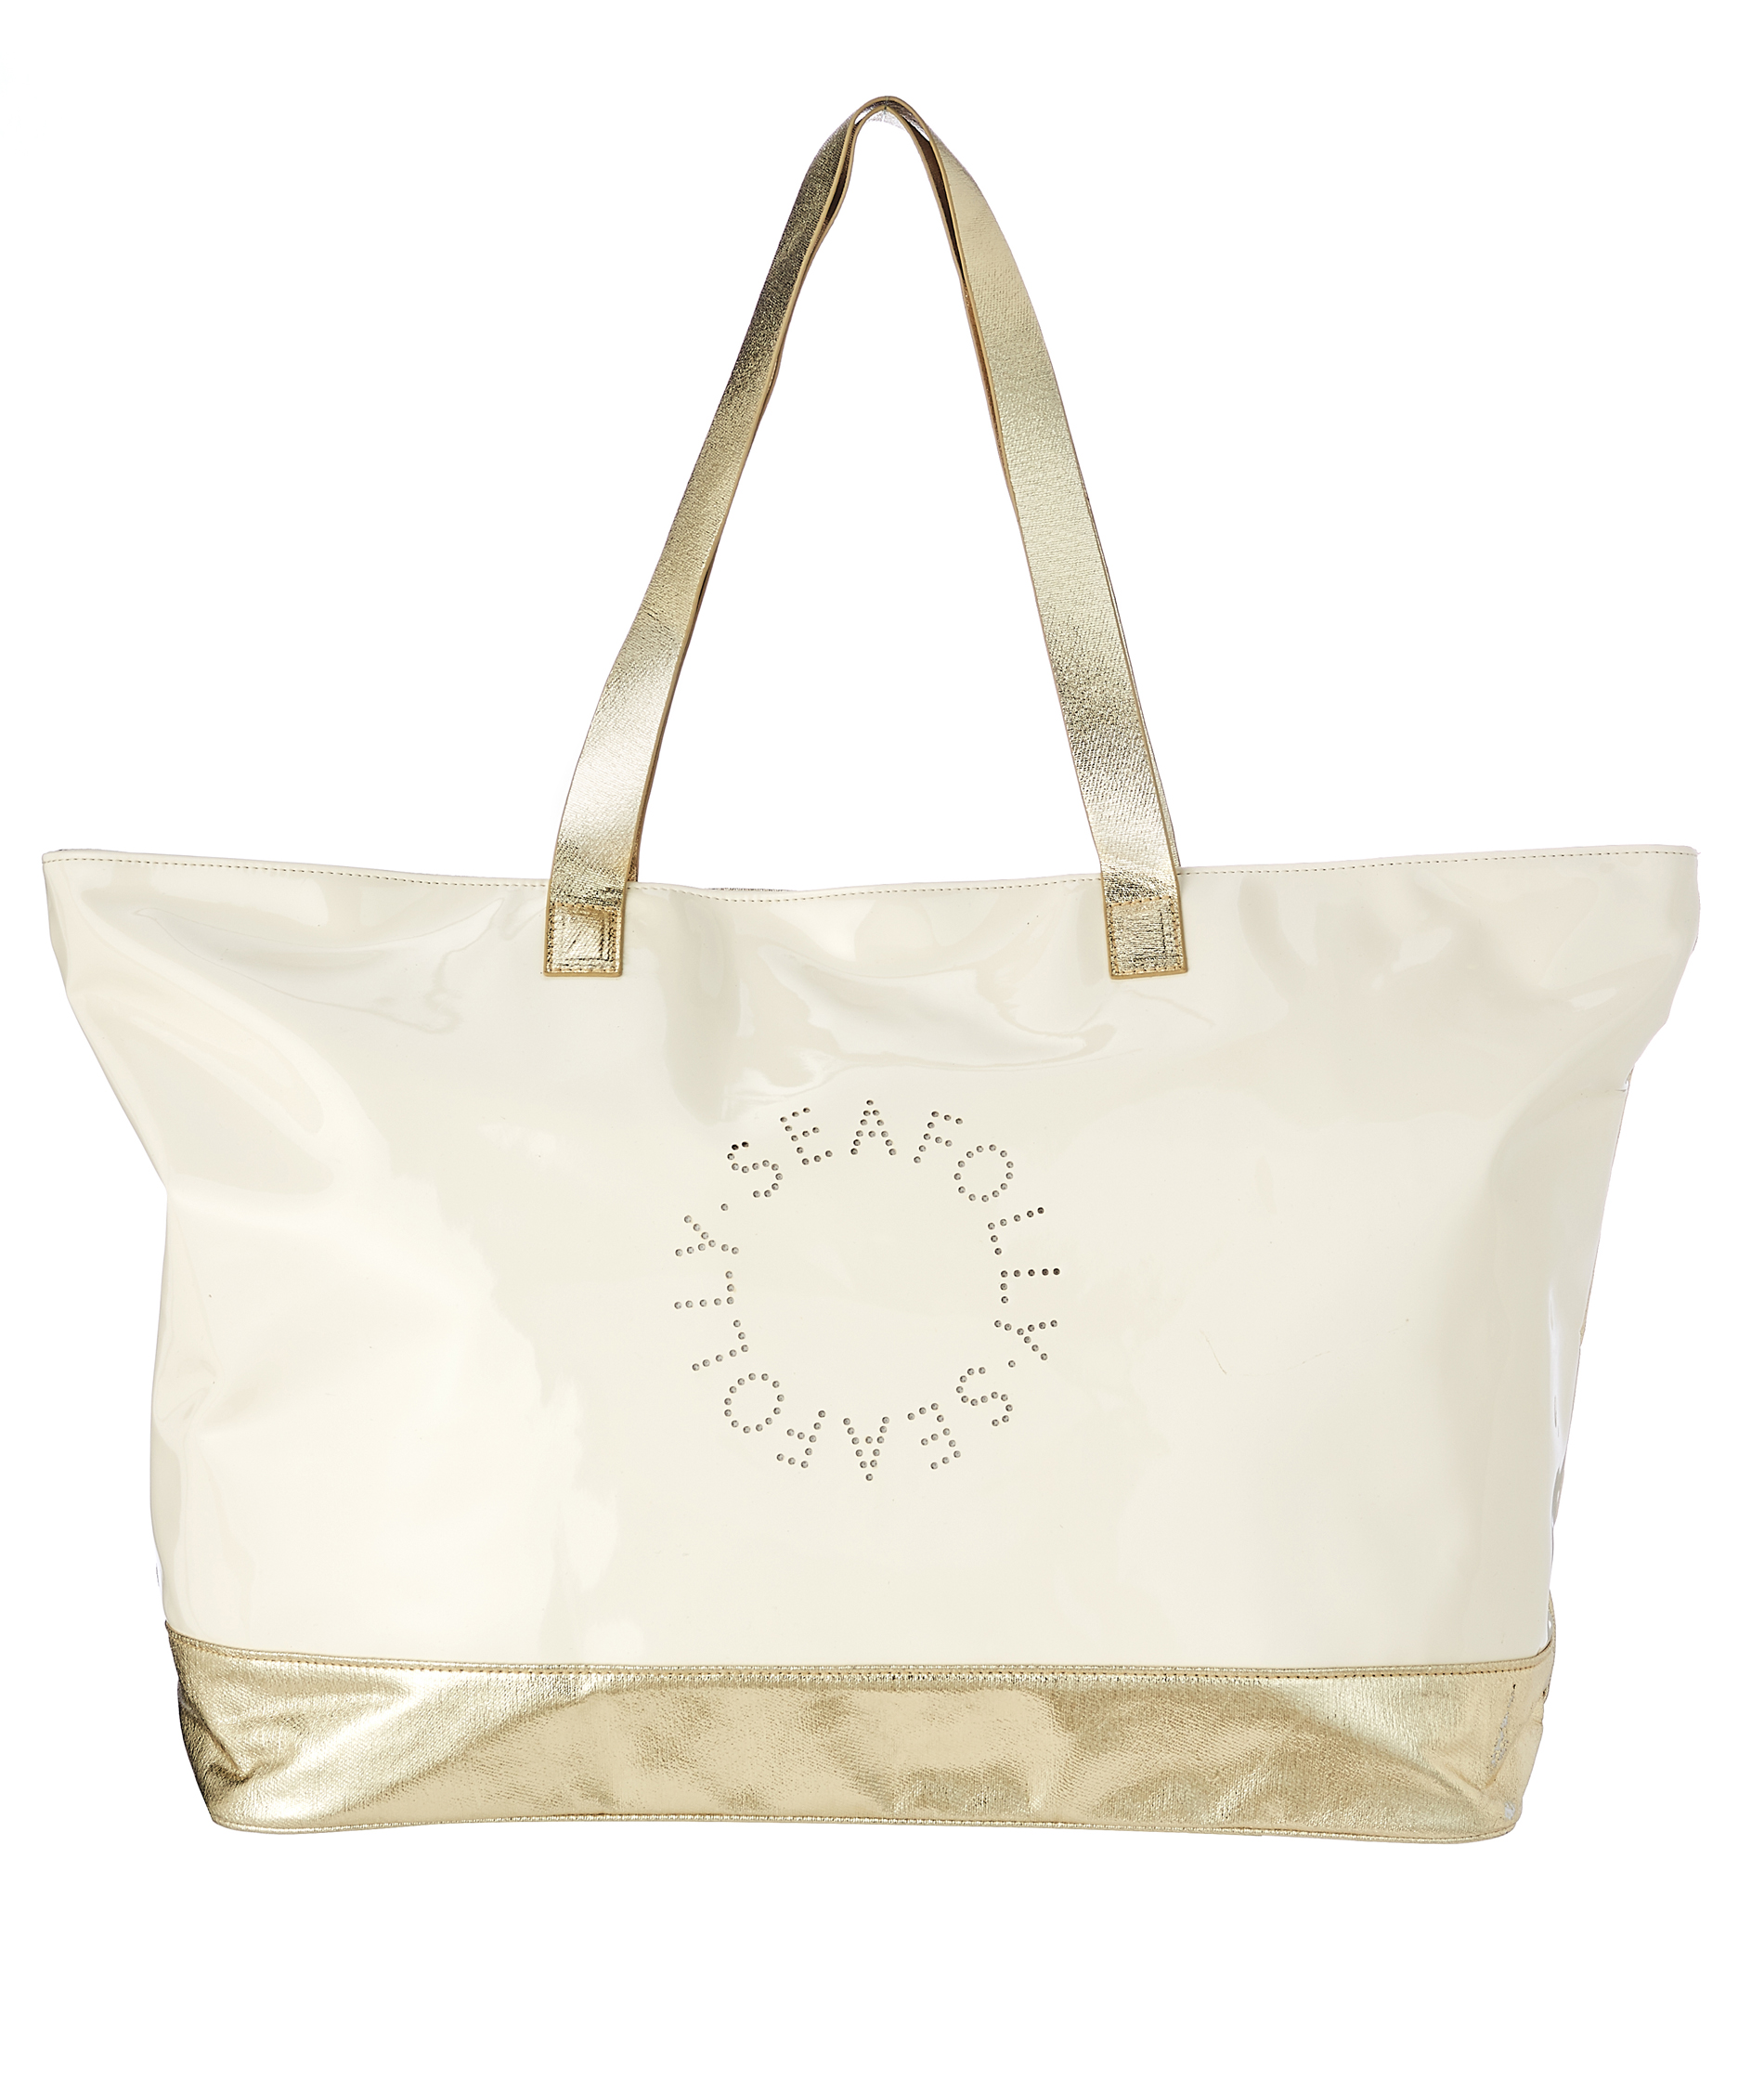 Seafolly Carried Away Perforated Metallic Logo Tote